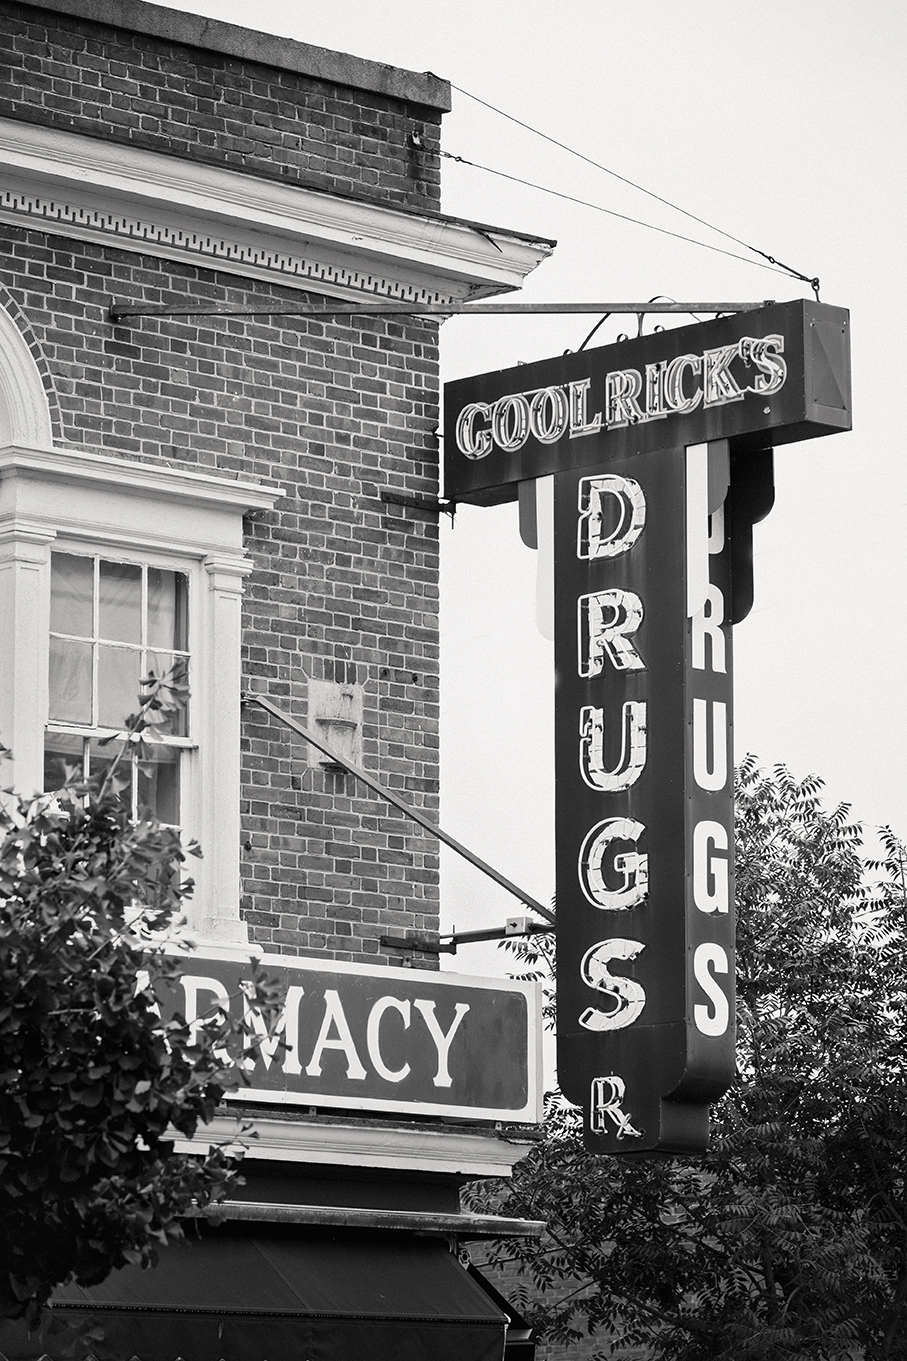 Goolrick's Pharmacy